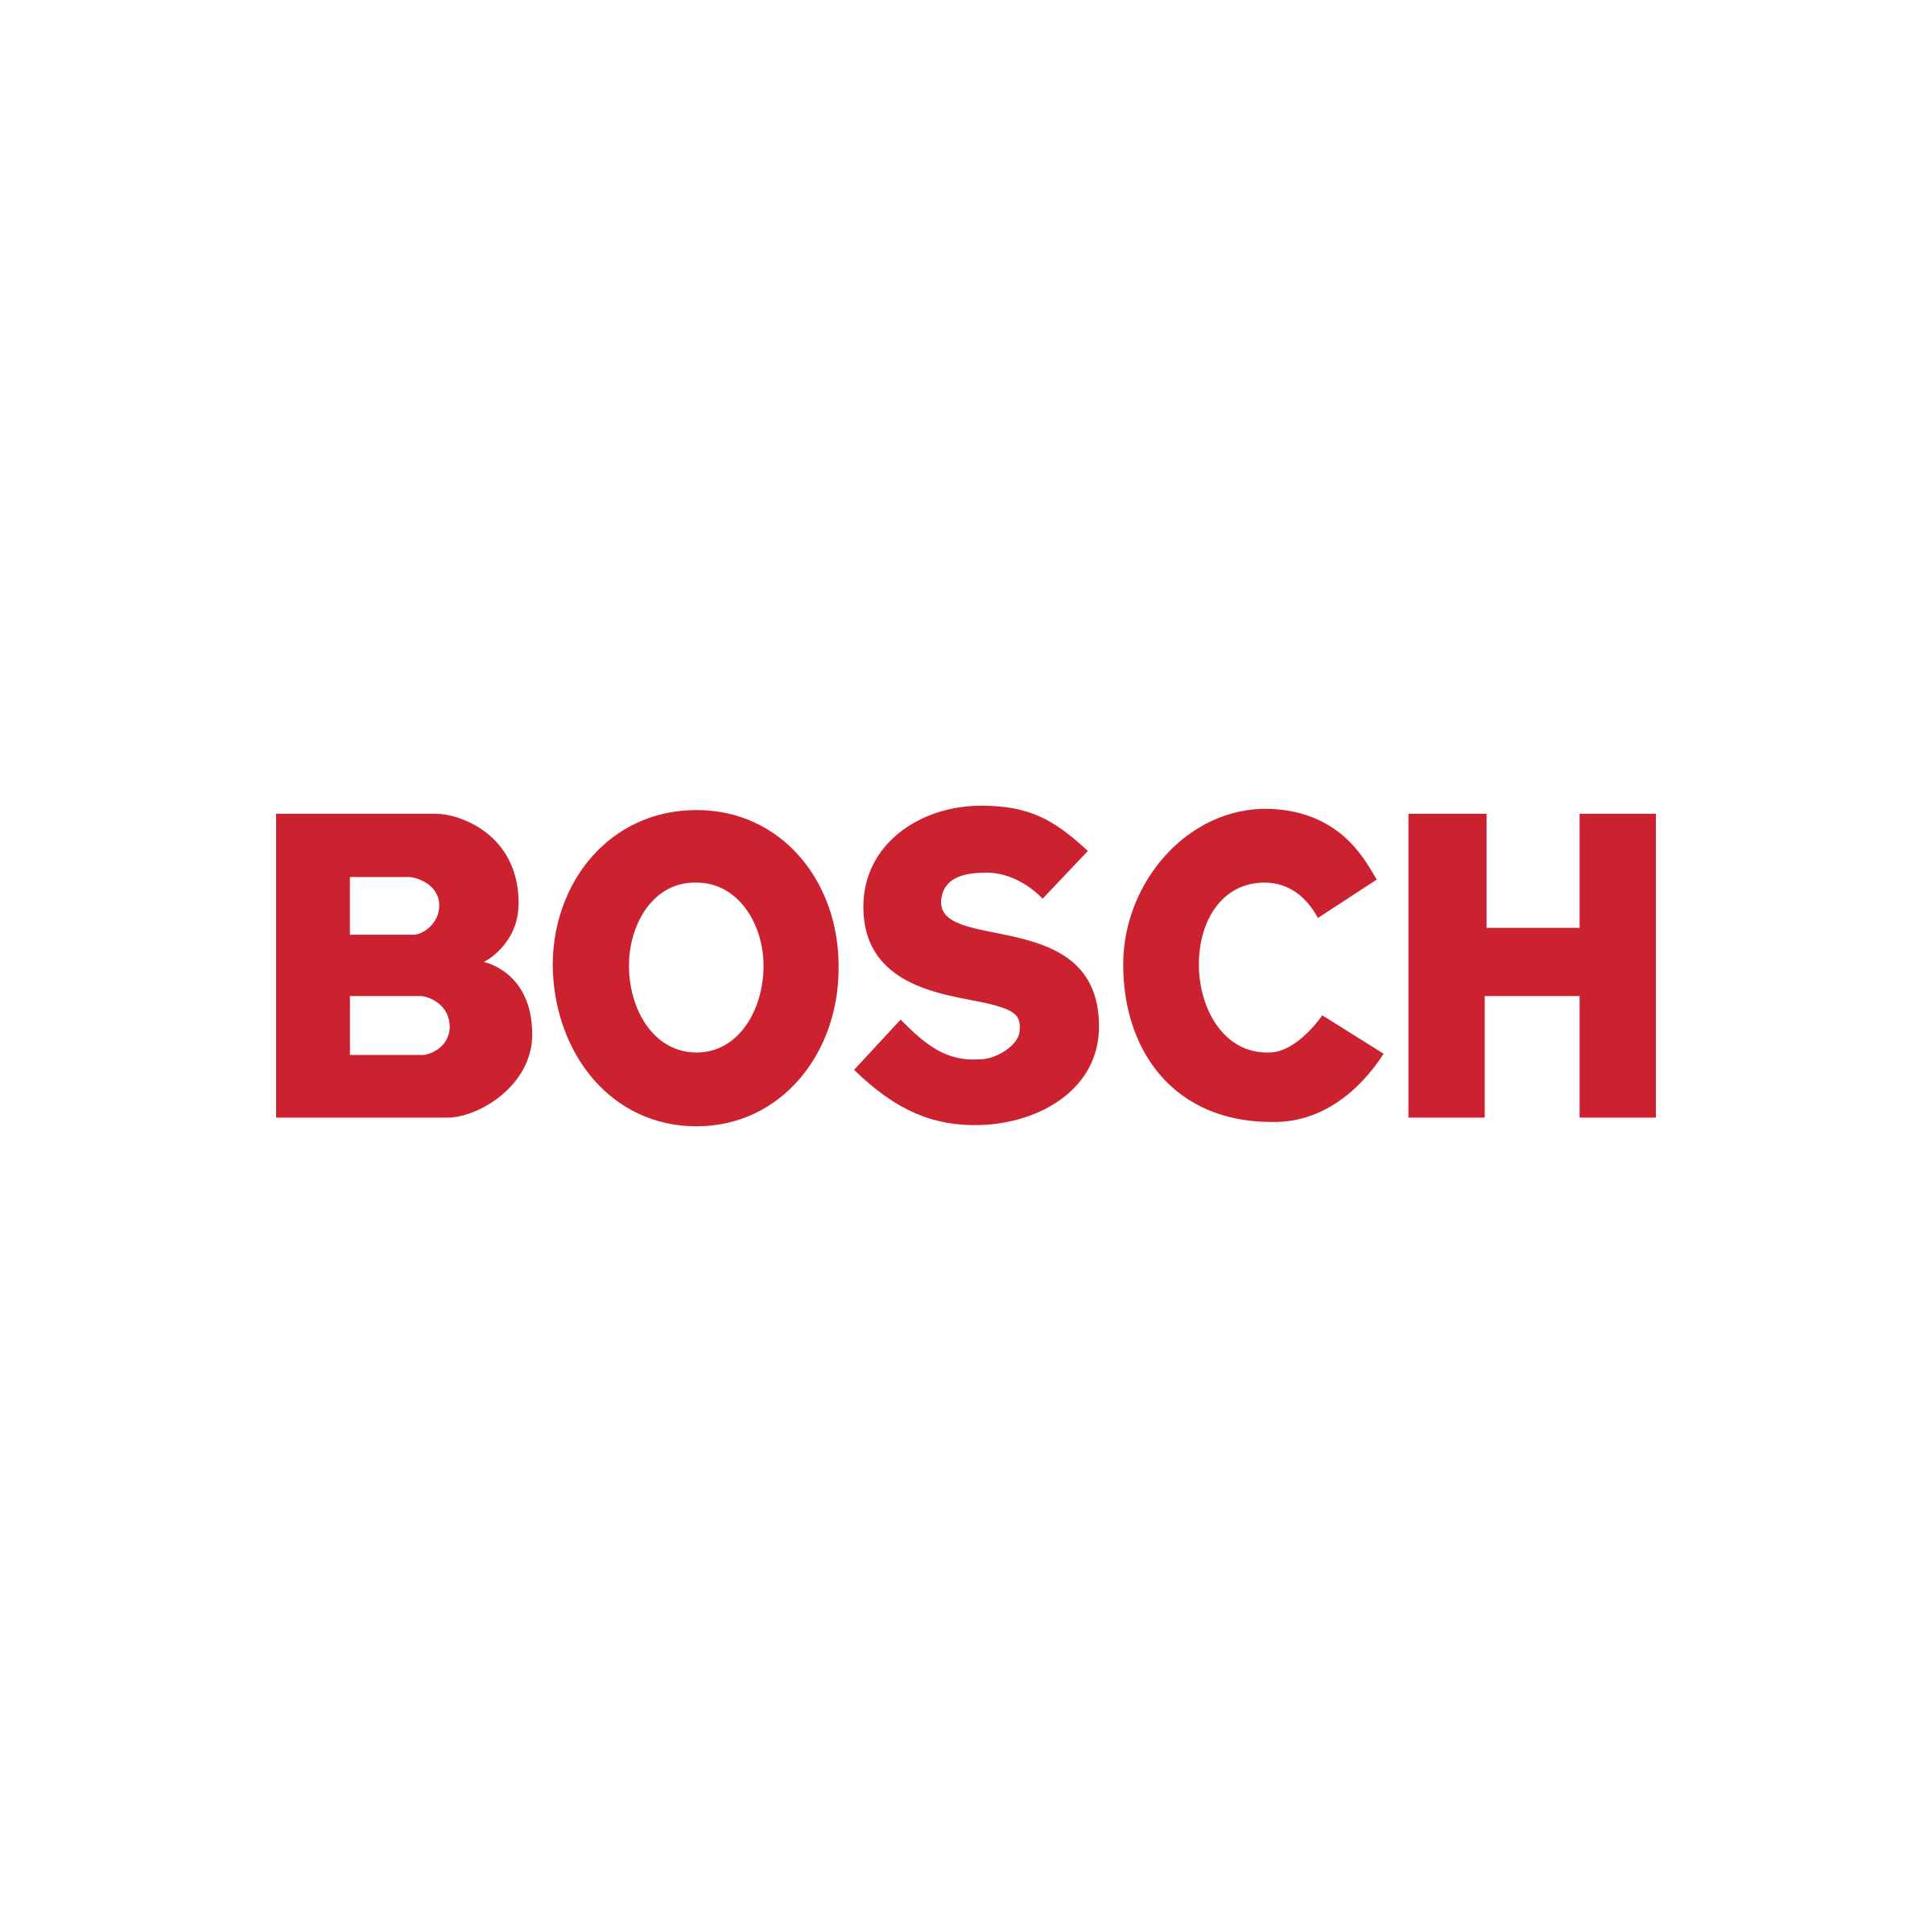 Bosch Logo PNG Transparent & SVG Vector.